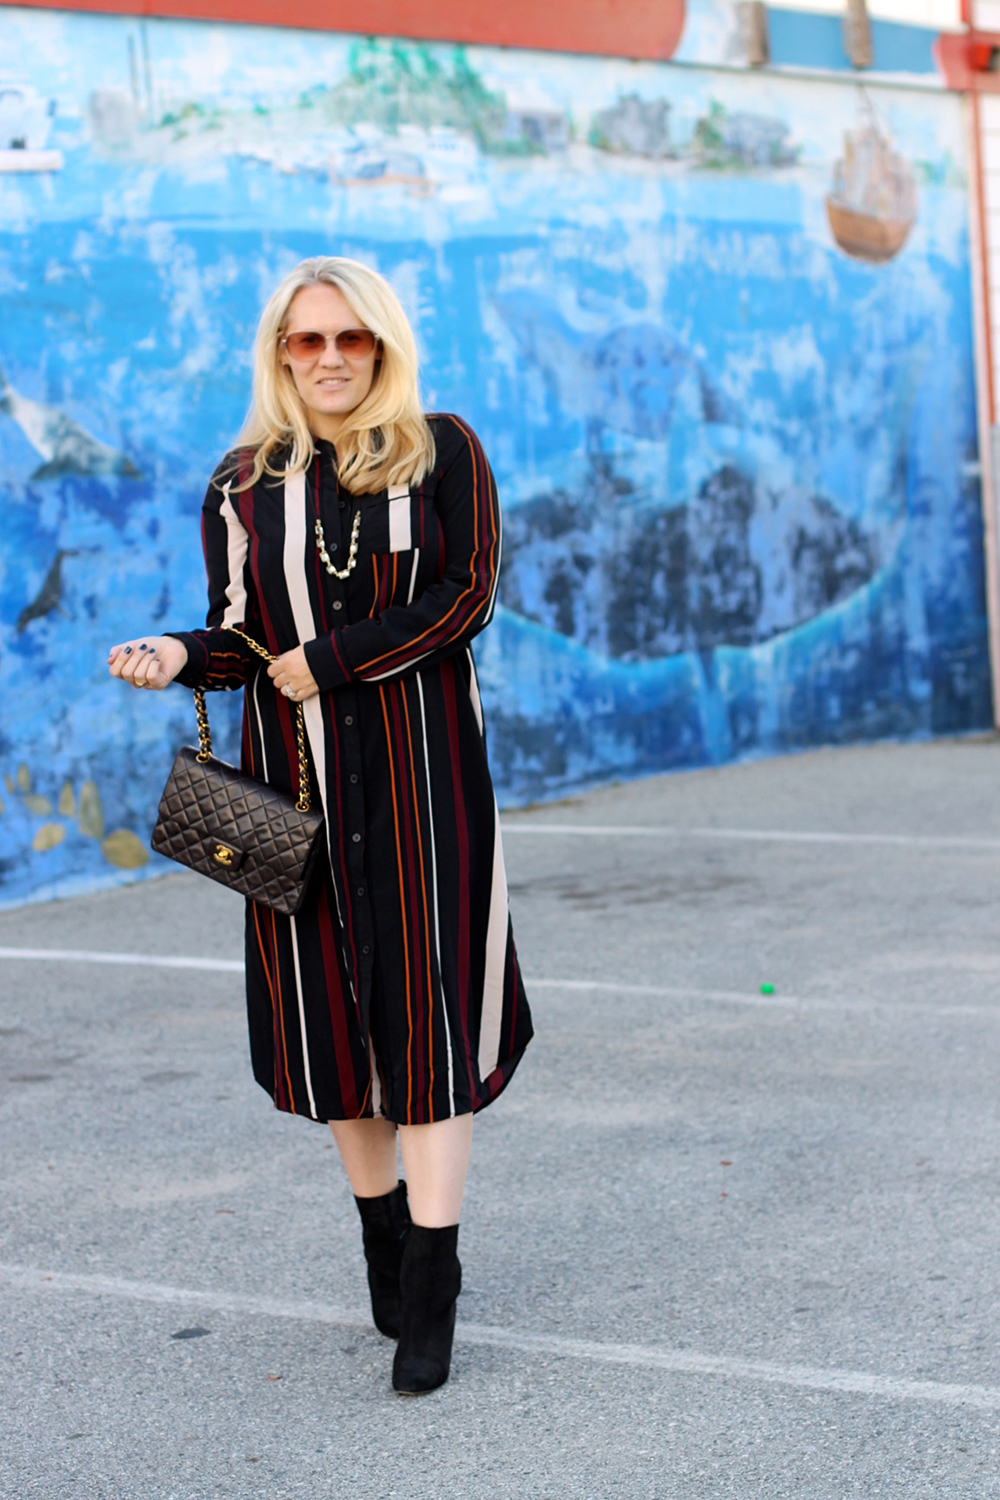 who-what-wear-pajama-shirtdress-target-style-fall-fashion-outfit-inspiration-bay-area-fashion-blogger-have-need-want-5